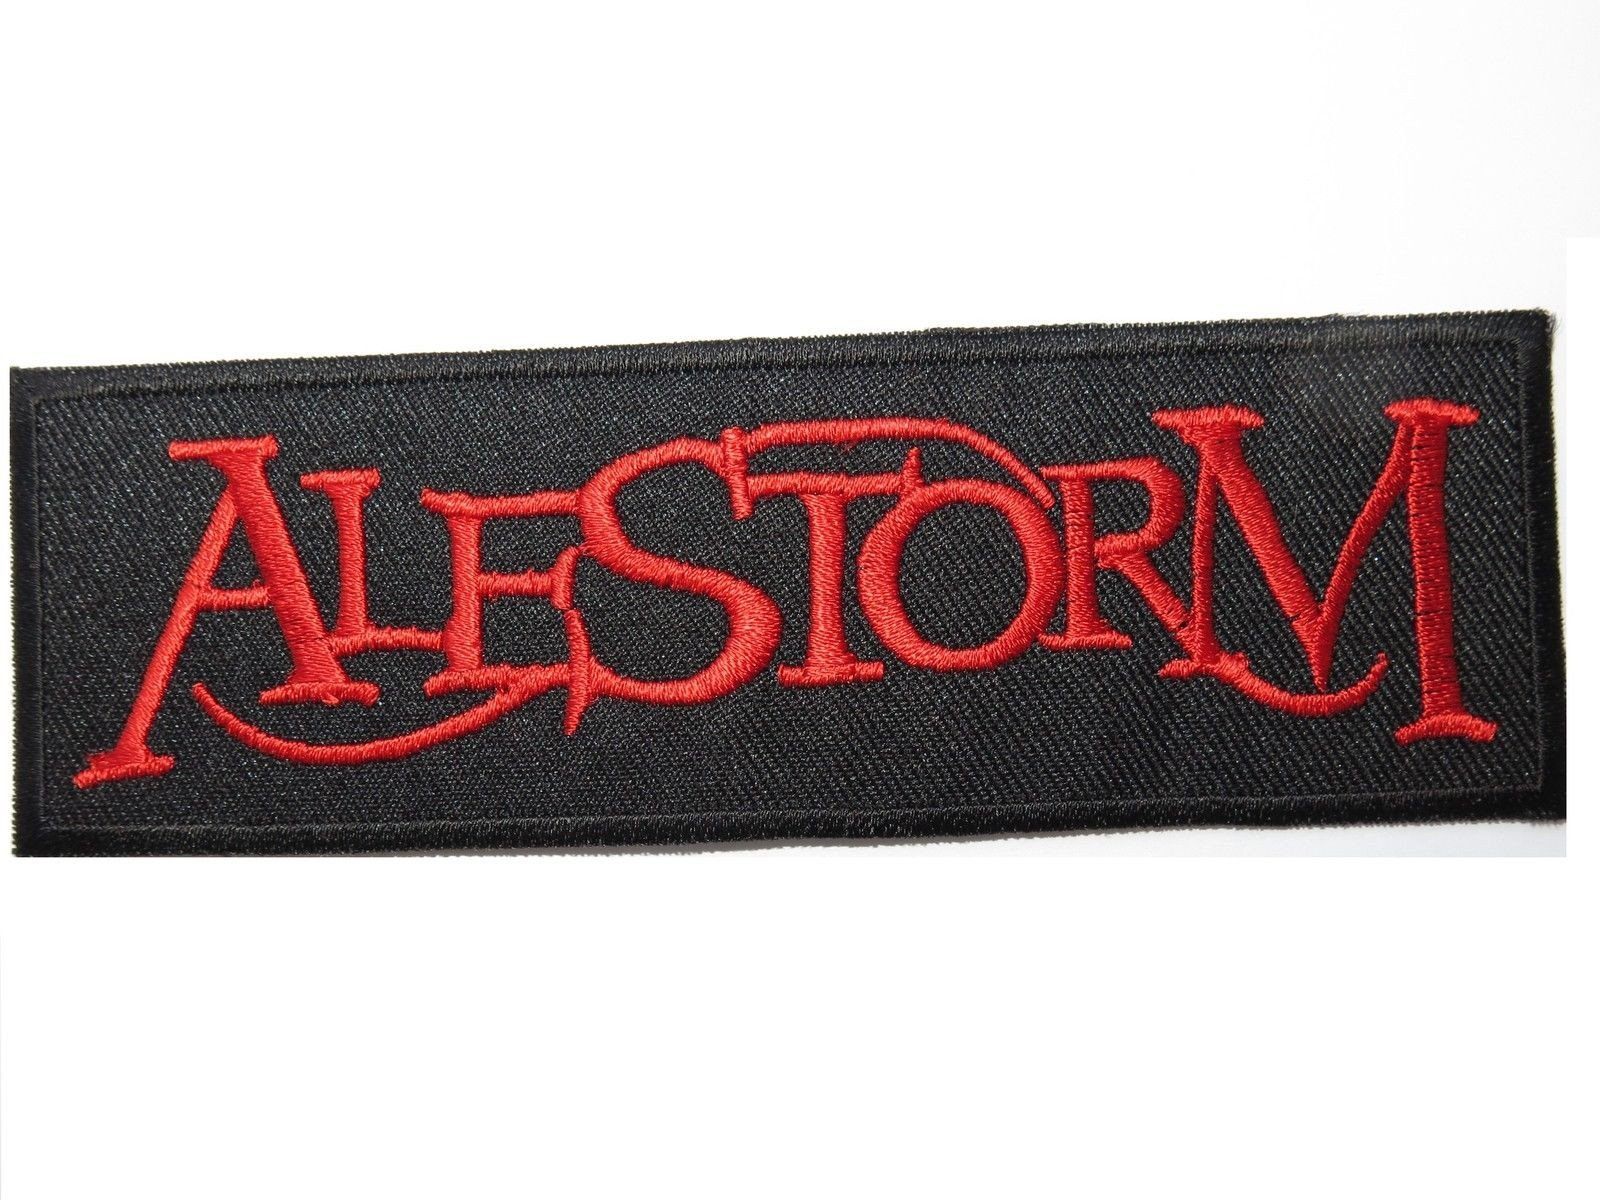 "ALESTORM Red Logo Iron On Sew On Embroidered Patch 4.9""/12.5cm - A Patch E Store"